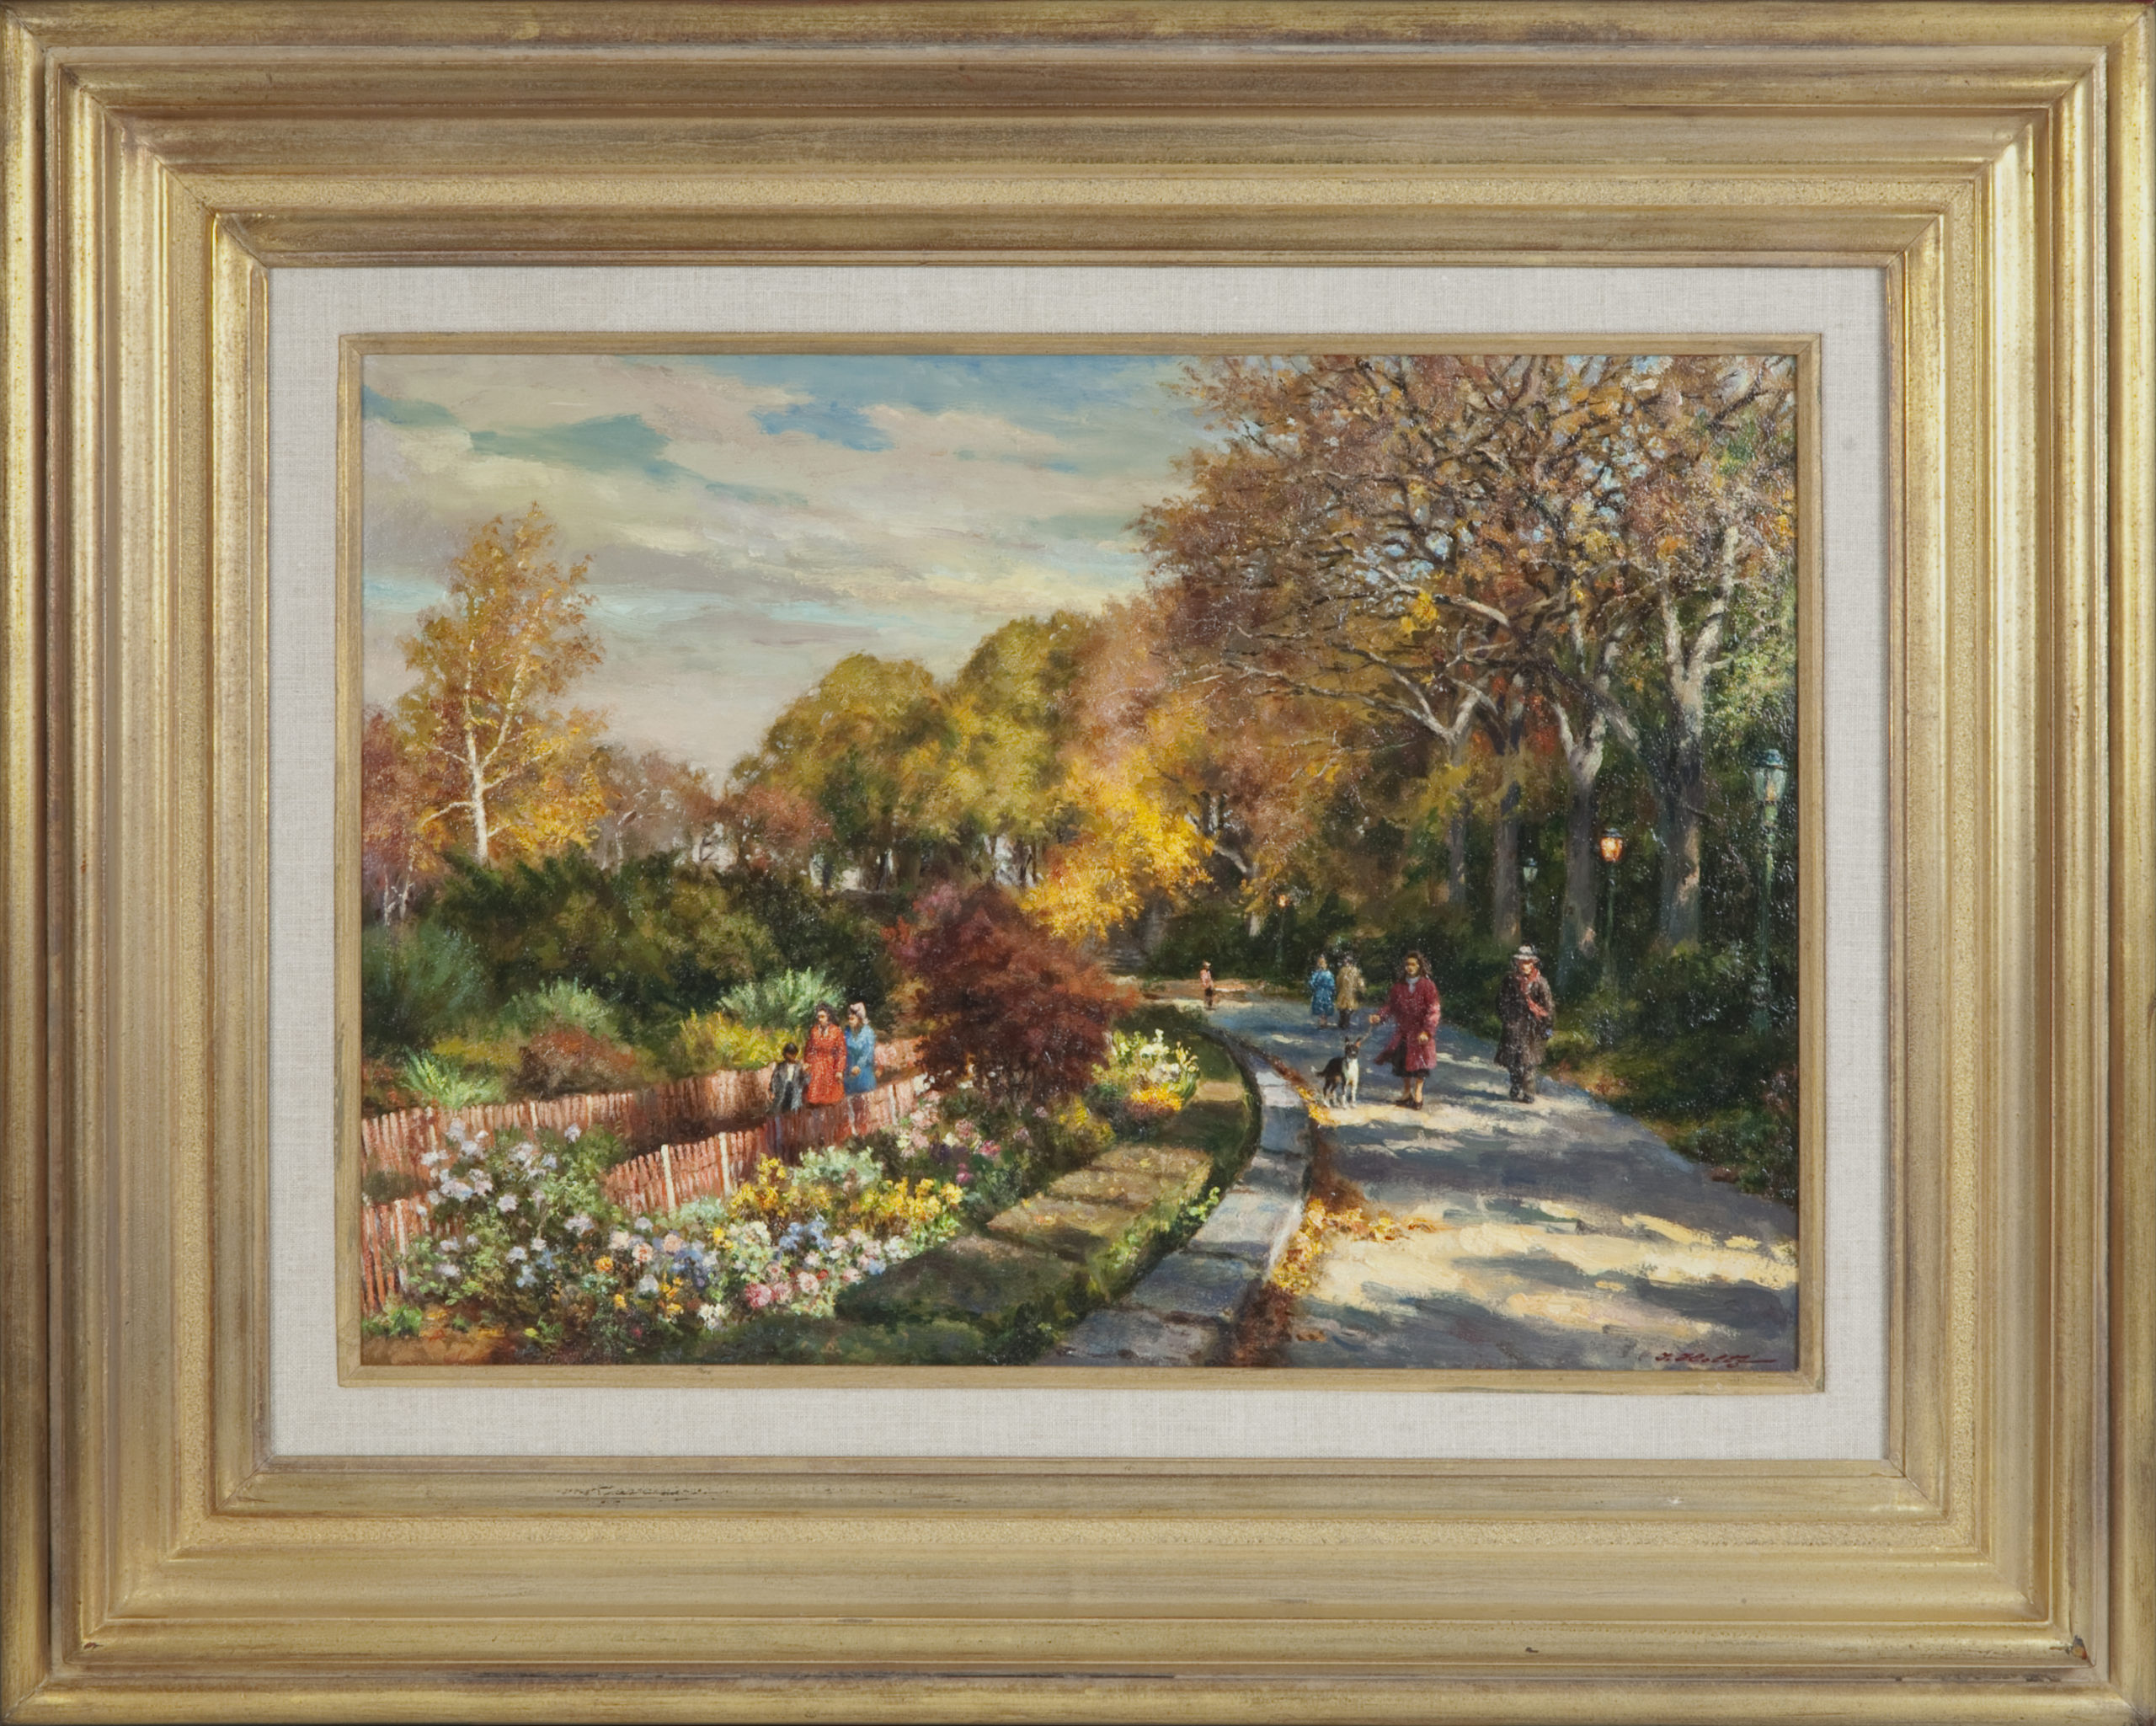 106 Fort Tryon Park 1988 - Oil on Masonite - 20 x 14 - Frame: 30 x 23.5 x 2